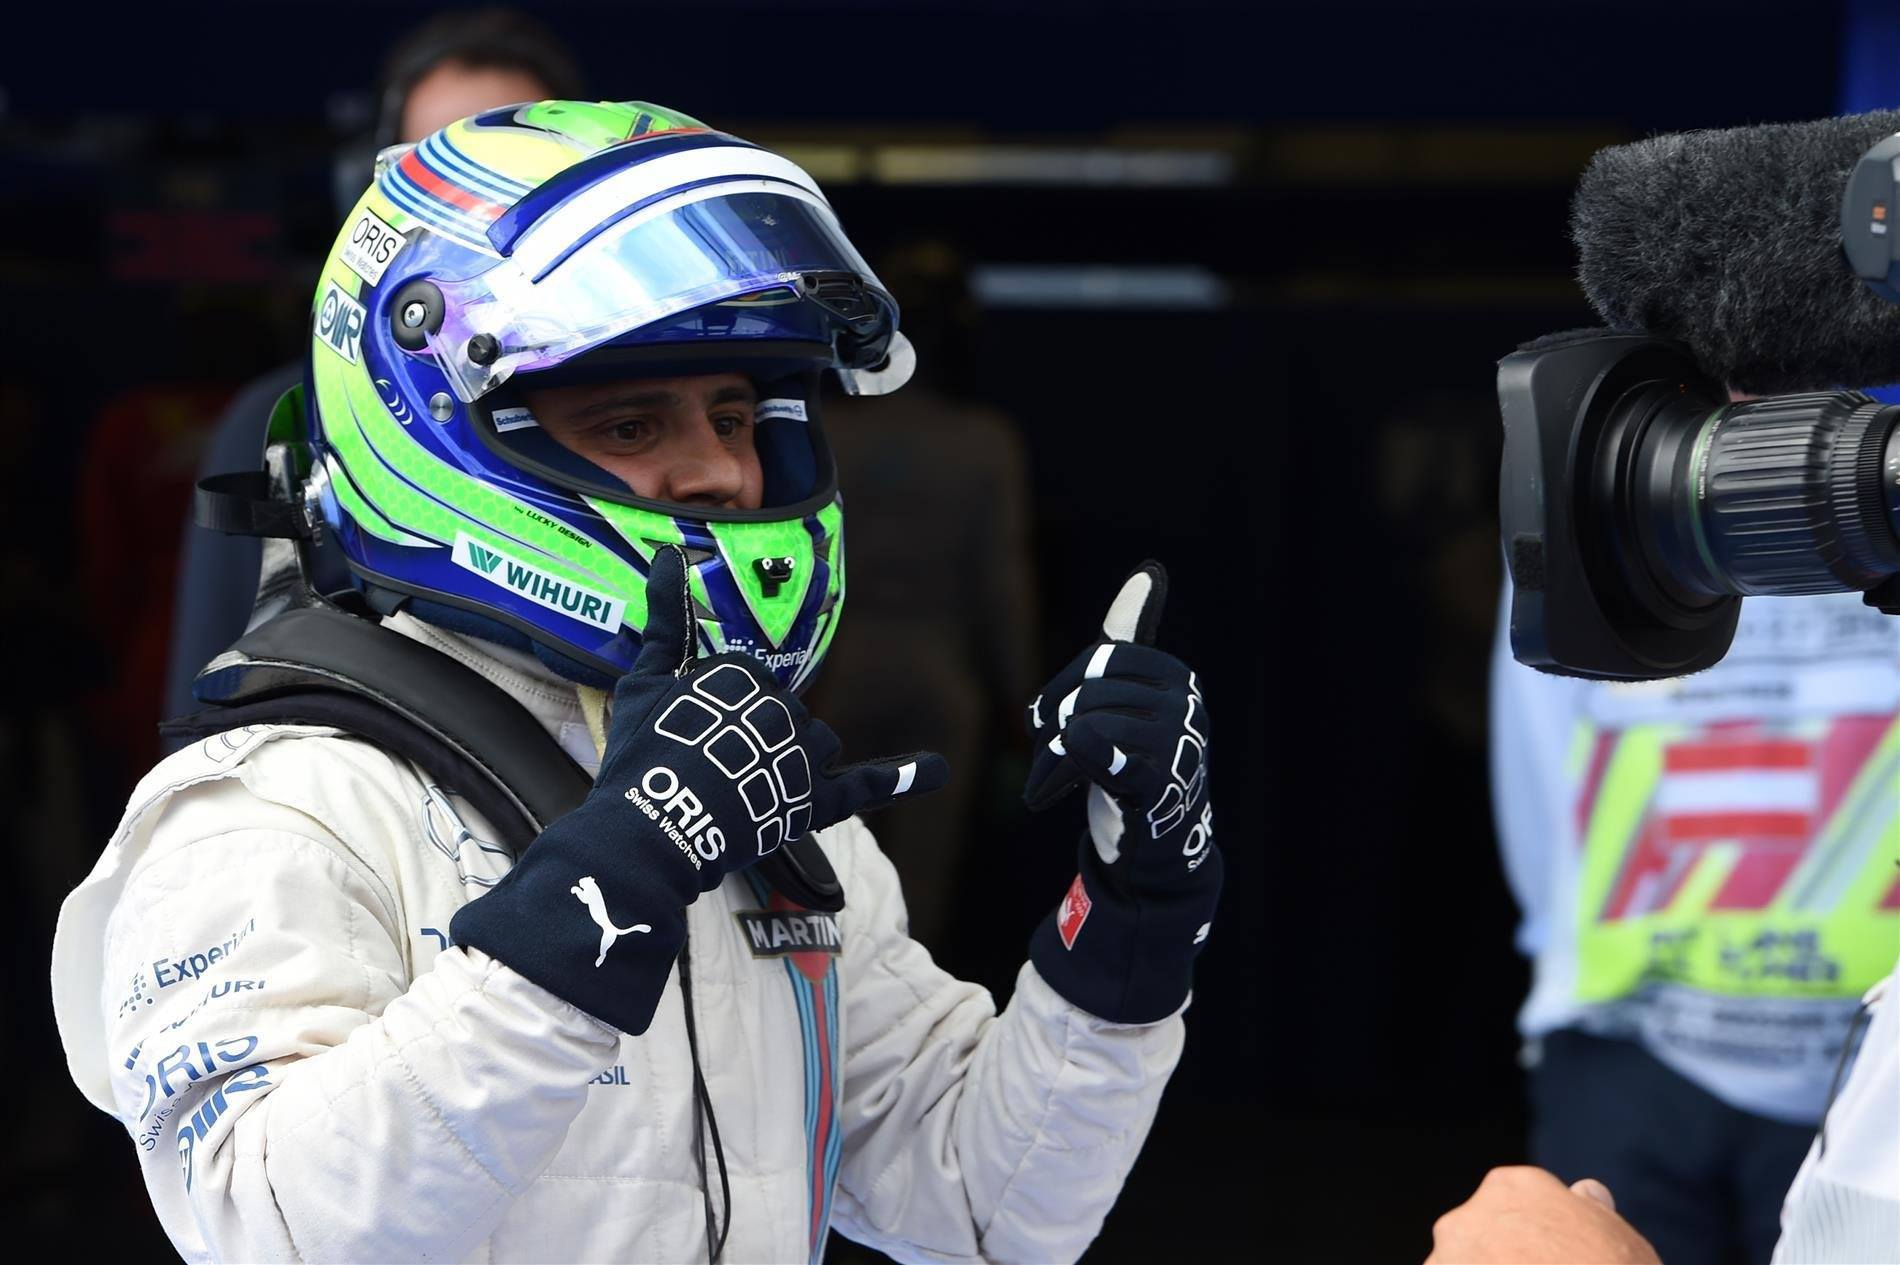 F1 | Felipe Massa entra in FIA come presidente CIK (Commissione Internazionale Karting)